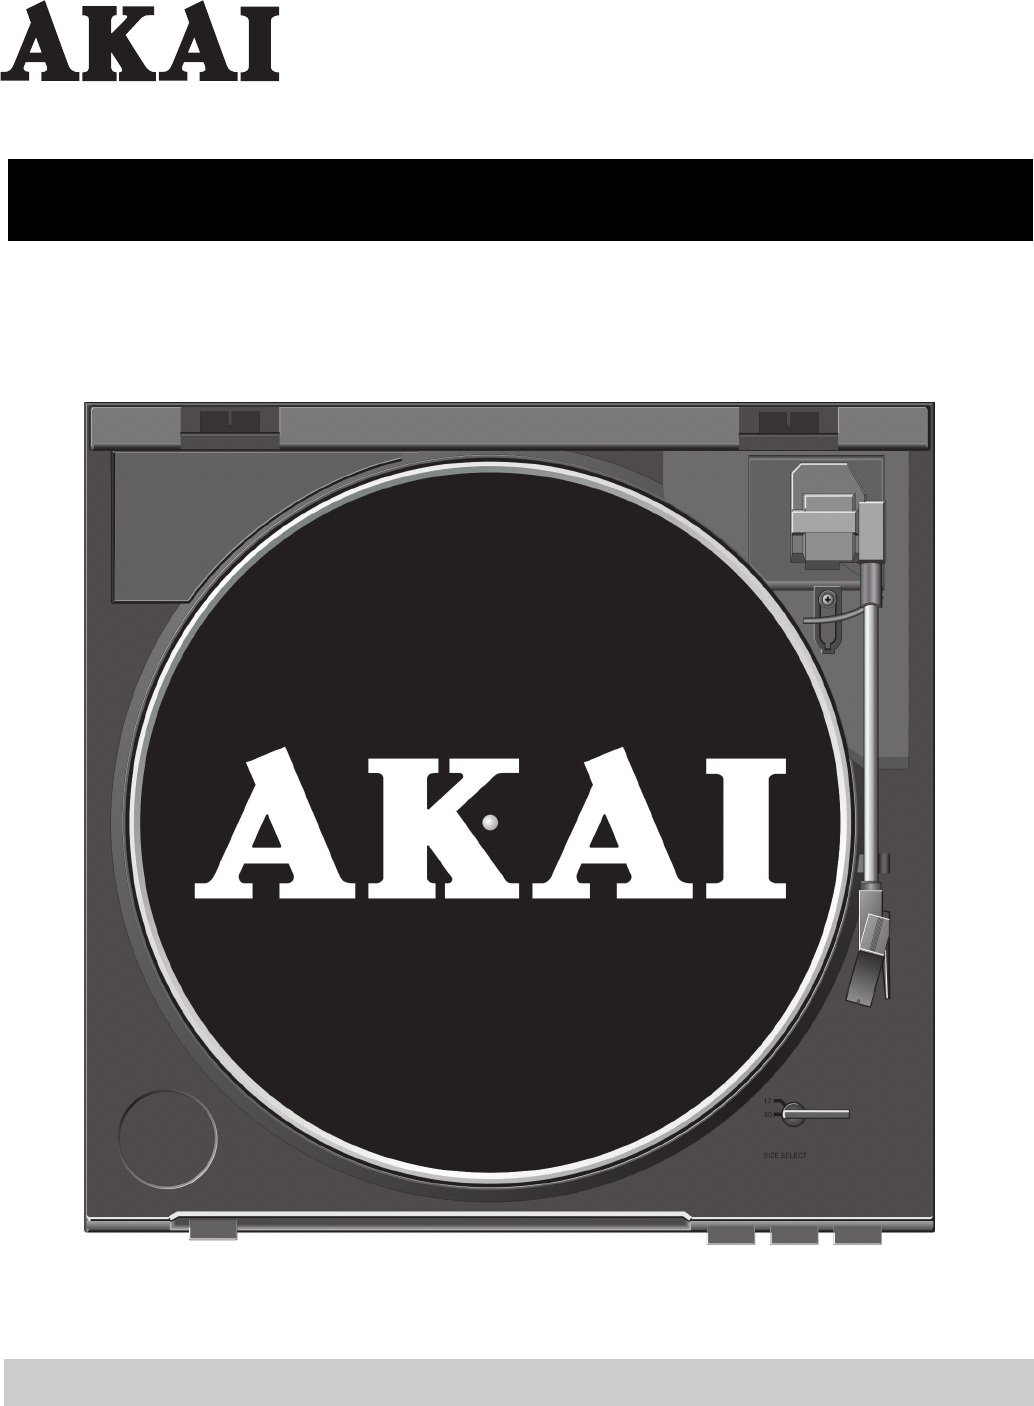 AKAI ATT01U PLATENSPELER WINDOWS XP DRIVER DOWNLOAD